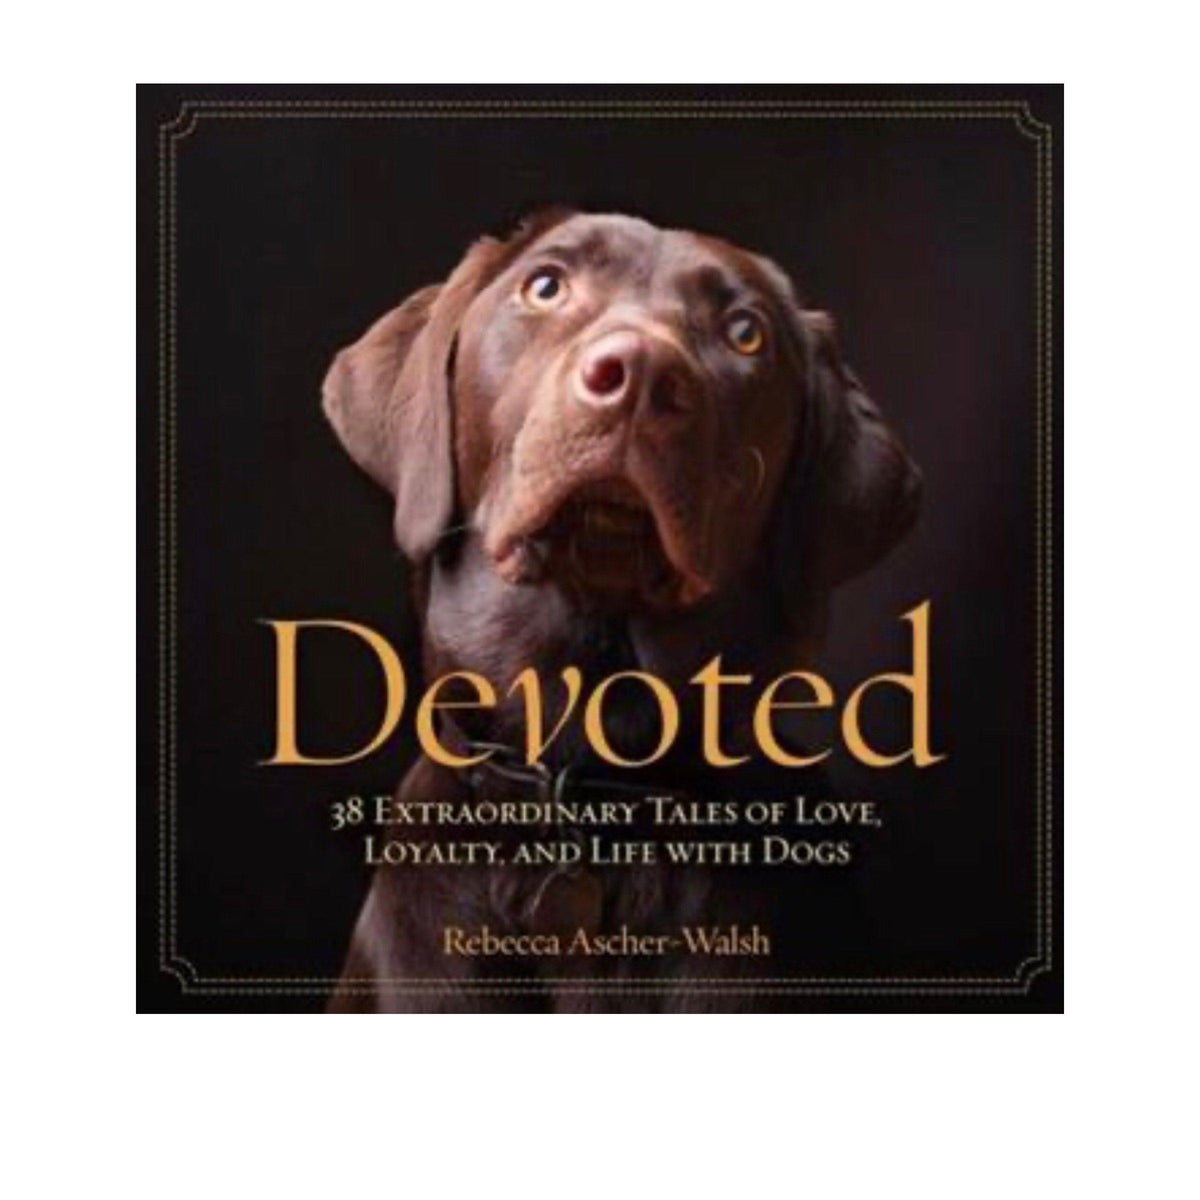 Devoted - A Gift Book Gift Books National Geographic